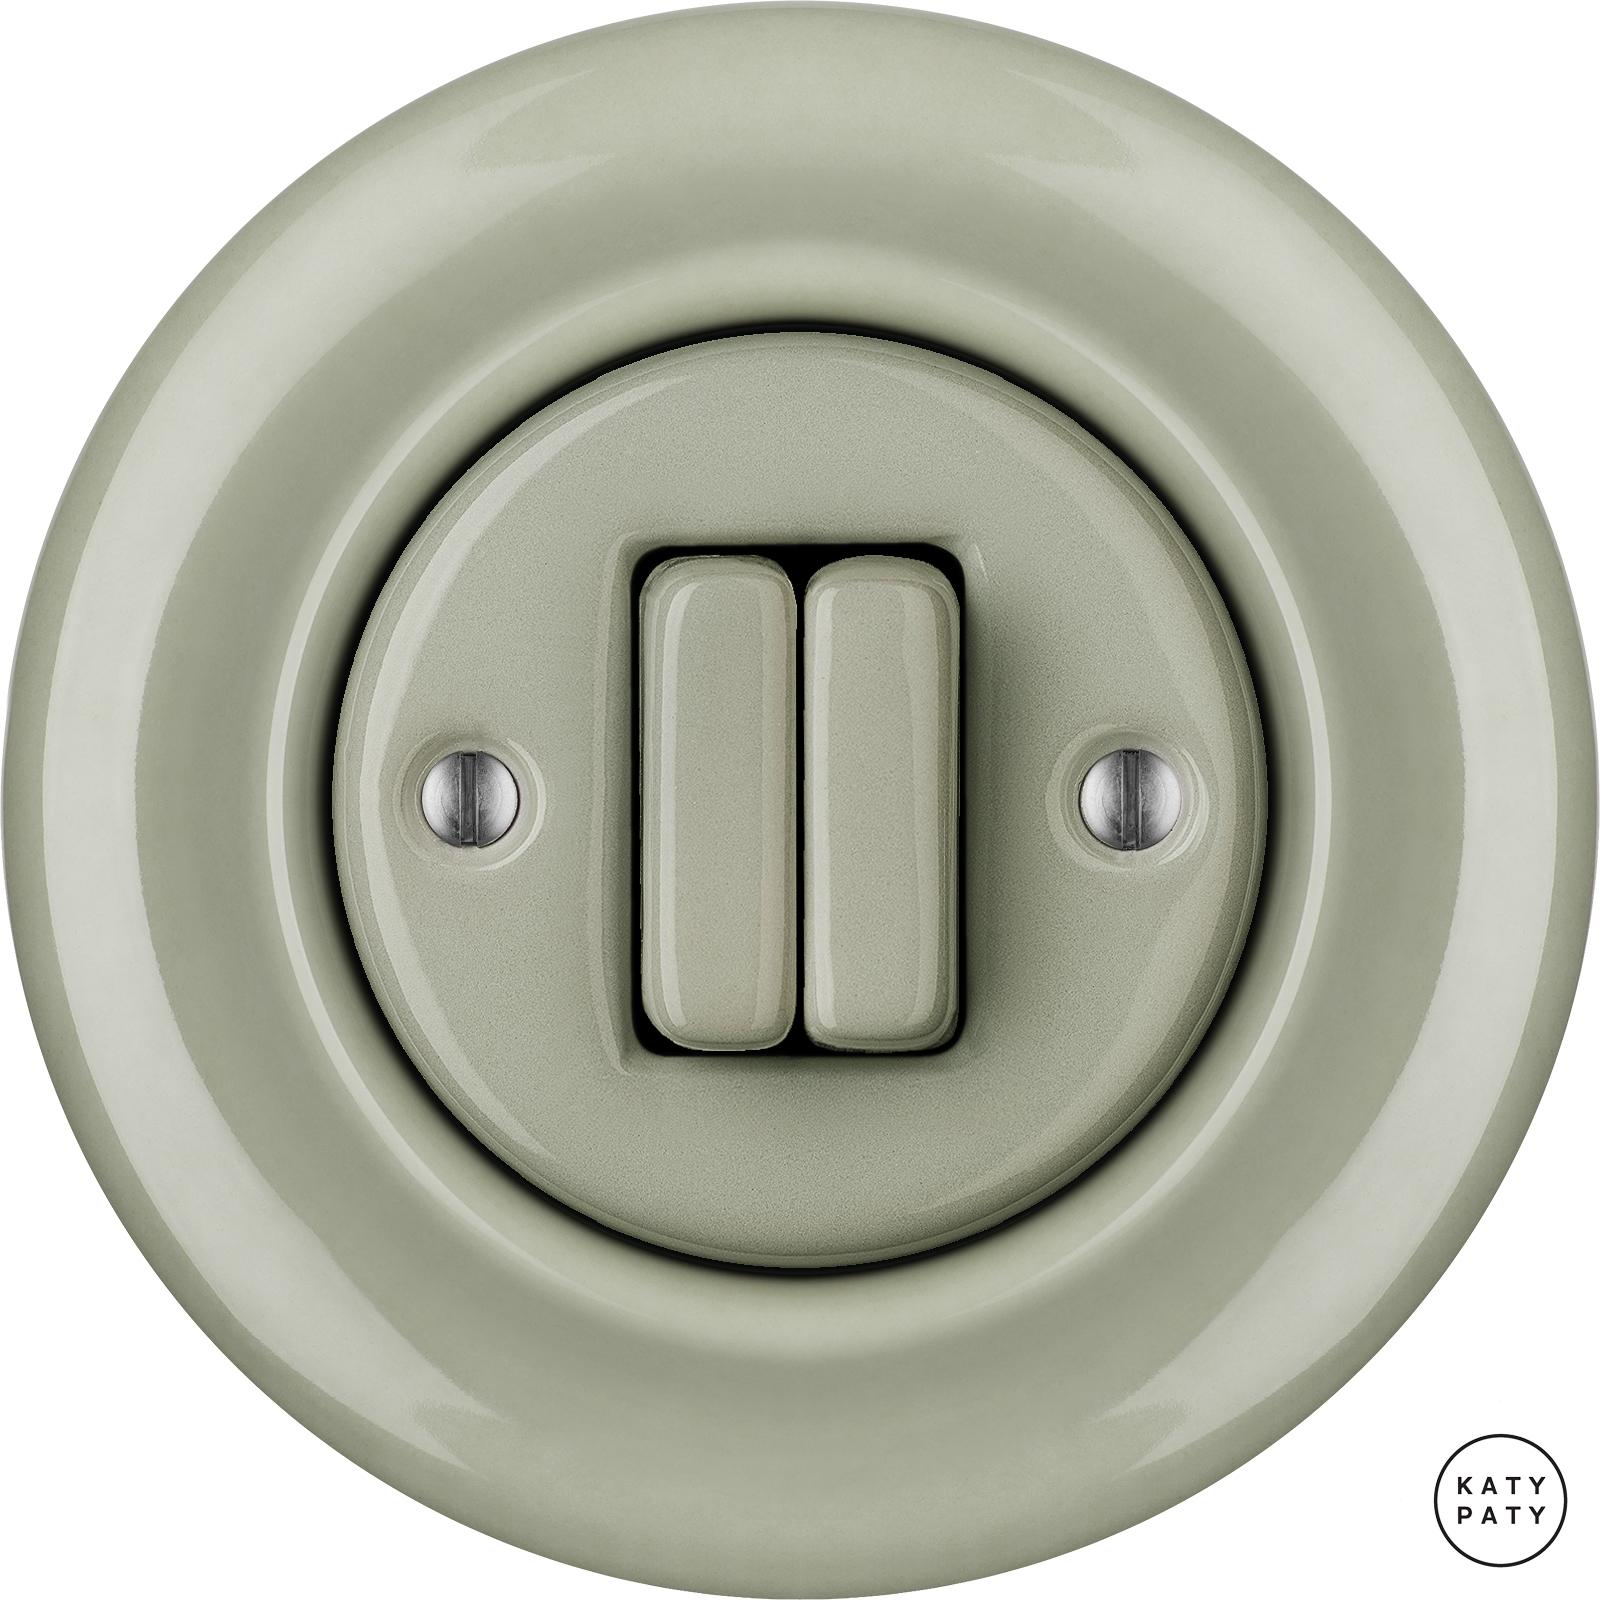 Porcelain switches - 2 gang ()  - CHLORA | Katy Paty